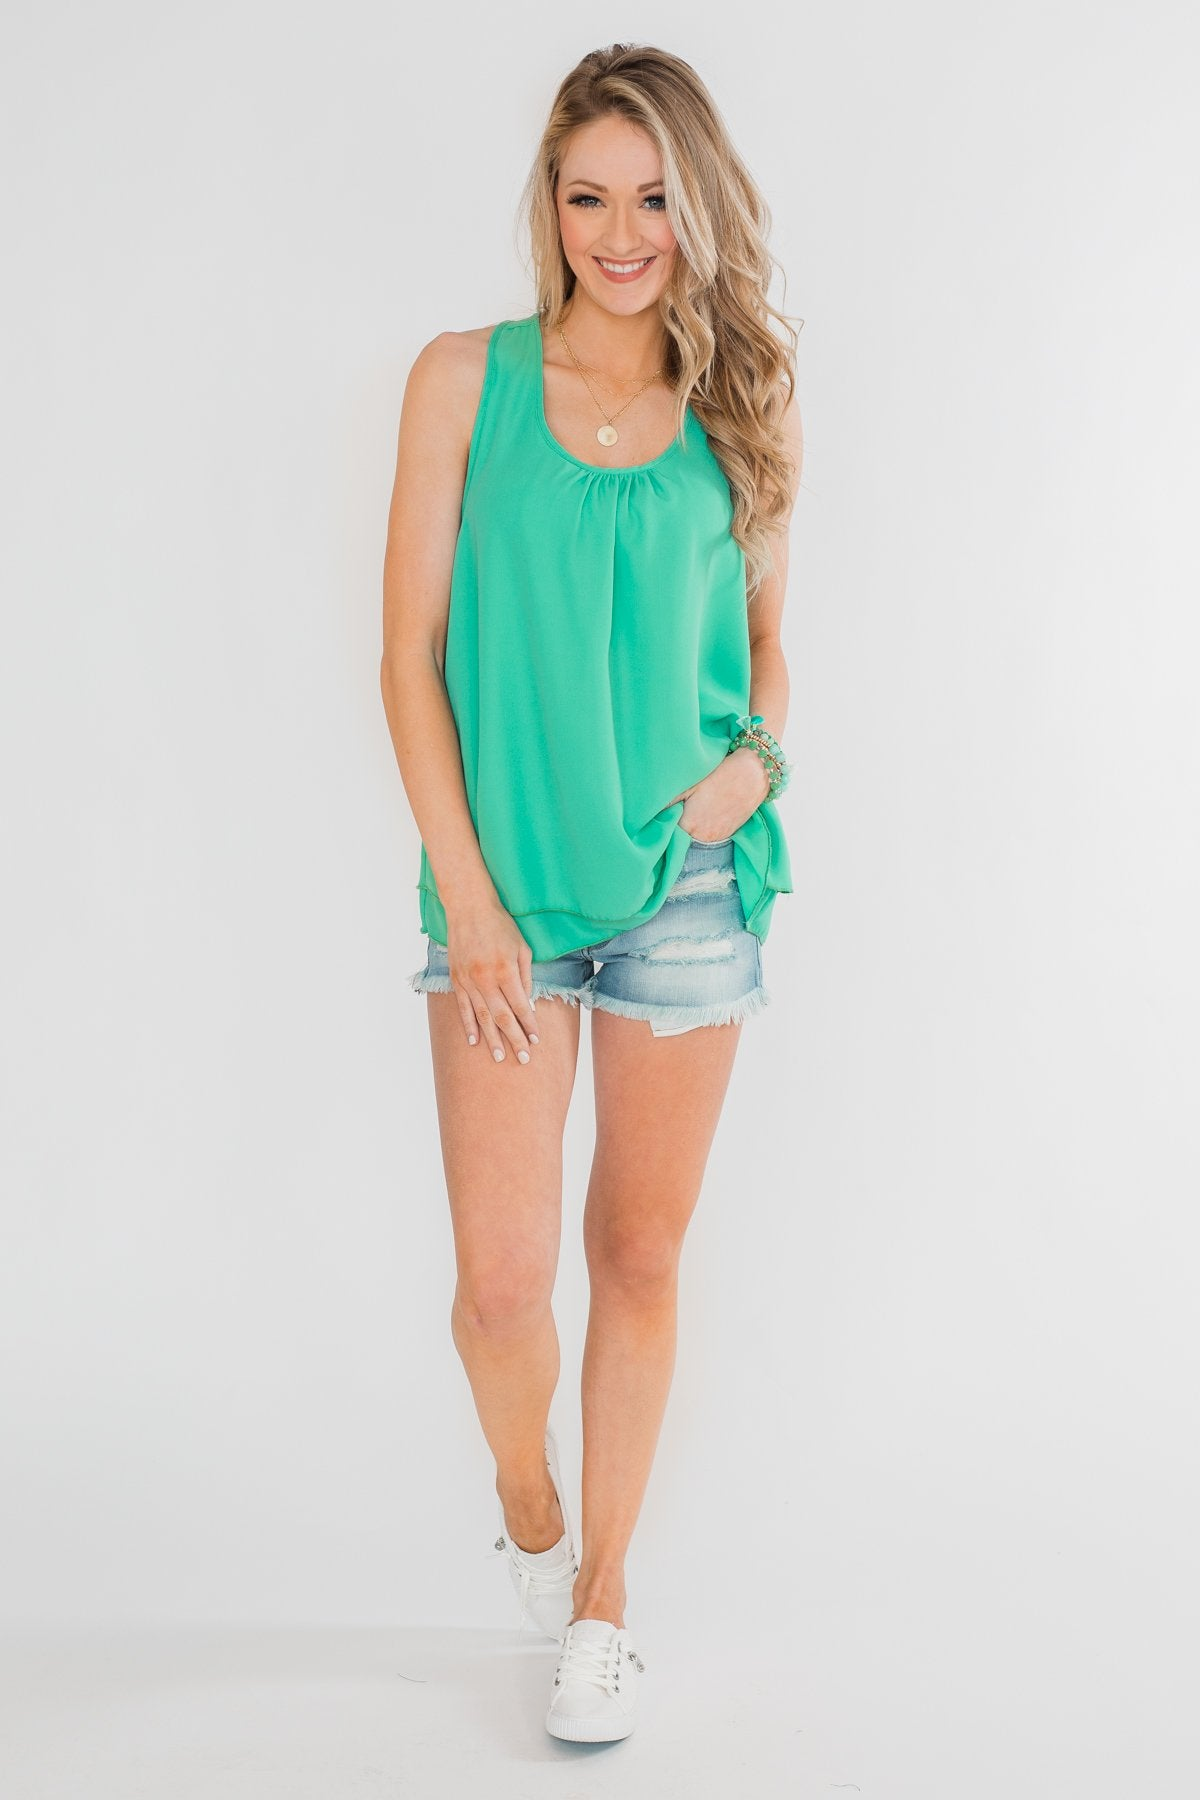 29f86ad8d2a999 Happy Days Racerback Ruffle Tank Outfit – The Pulse Boutique